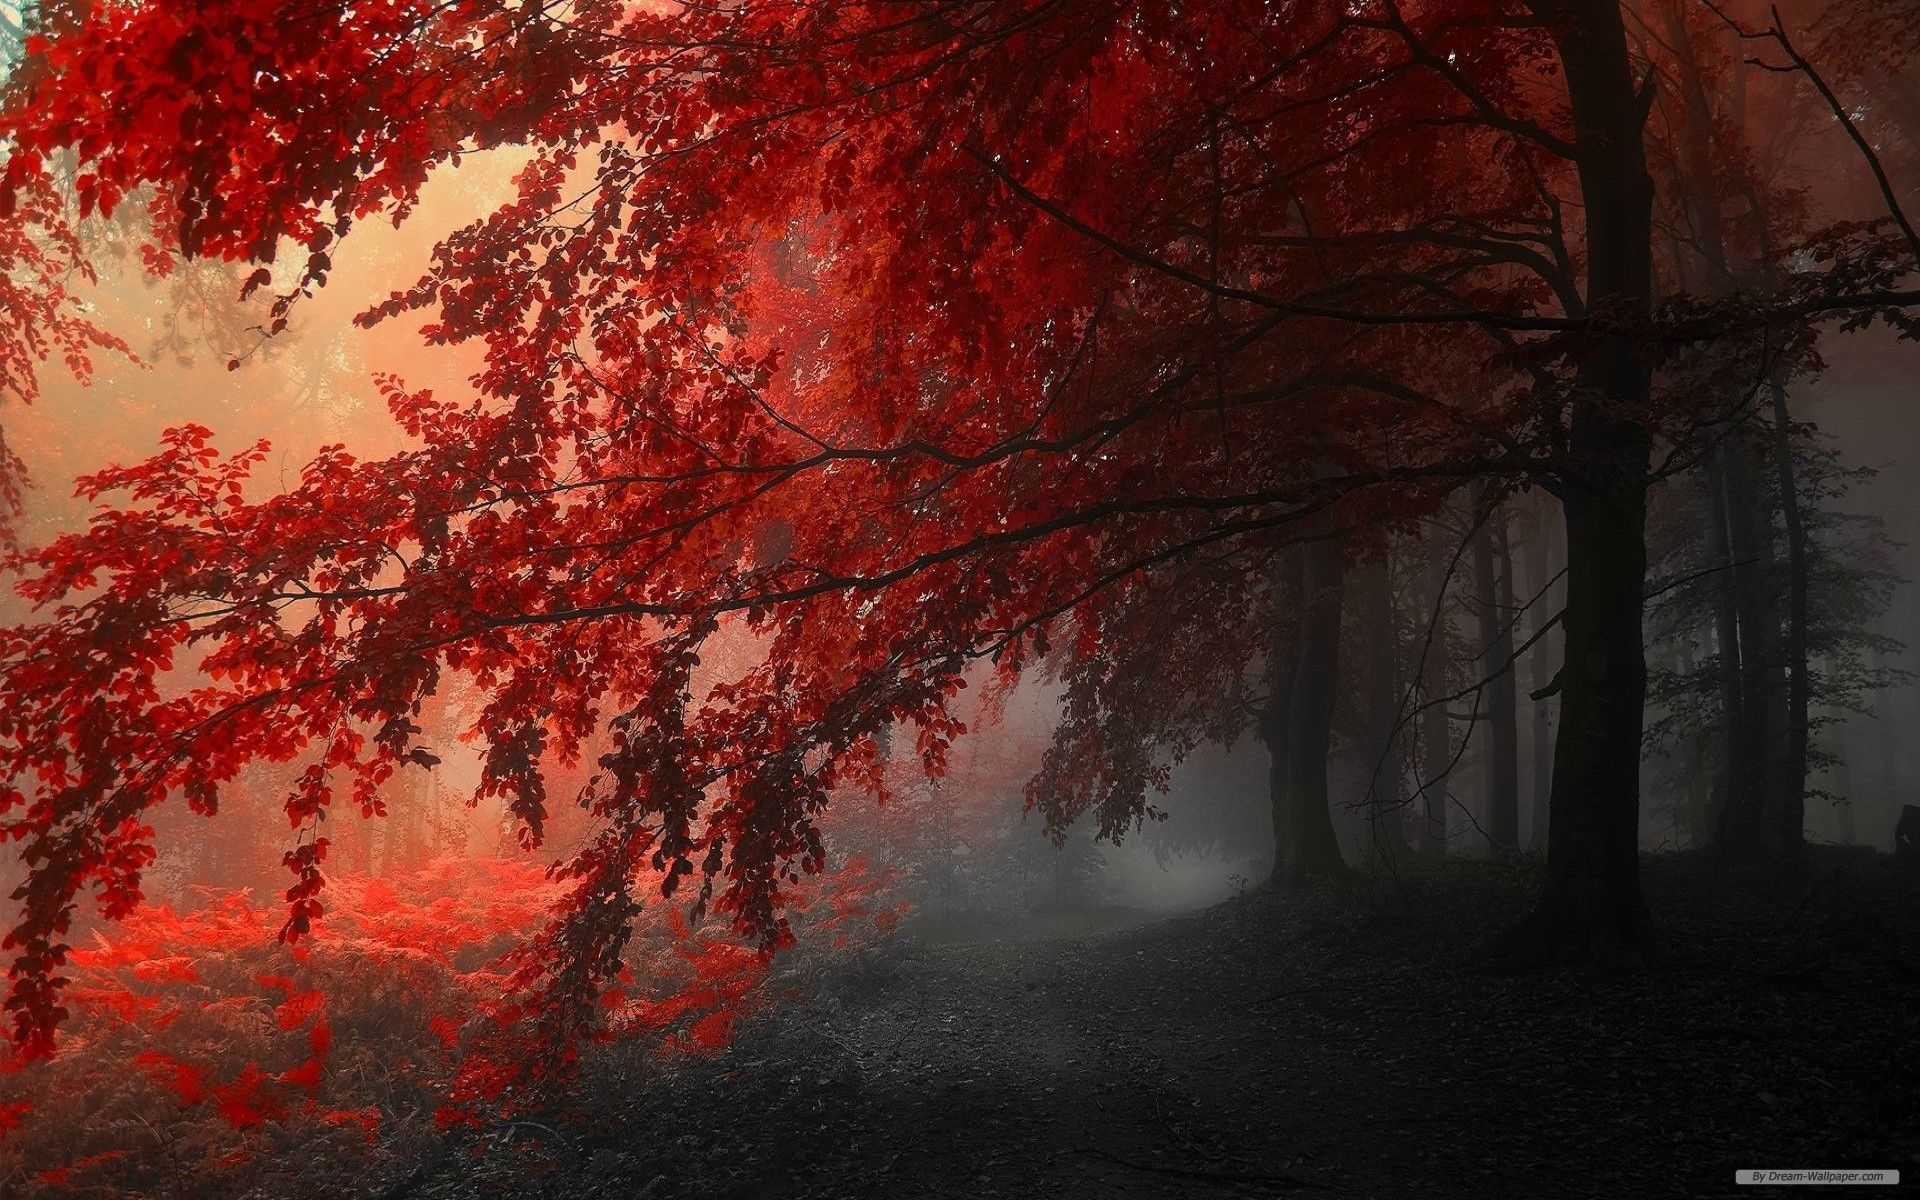 Free Nature Wallpaper Autumn Red Leaves Forest Trees Wallpaper 1920x1200 Wallpaper Index 5 Tree Hd Wallpaper Forest Wallpaper Landscape